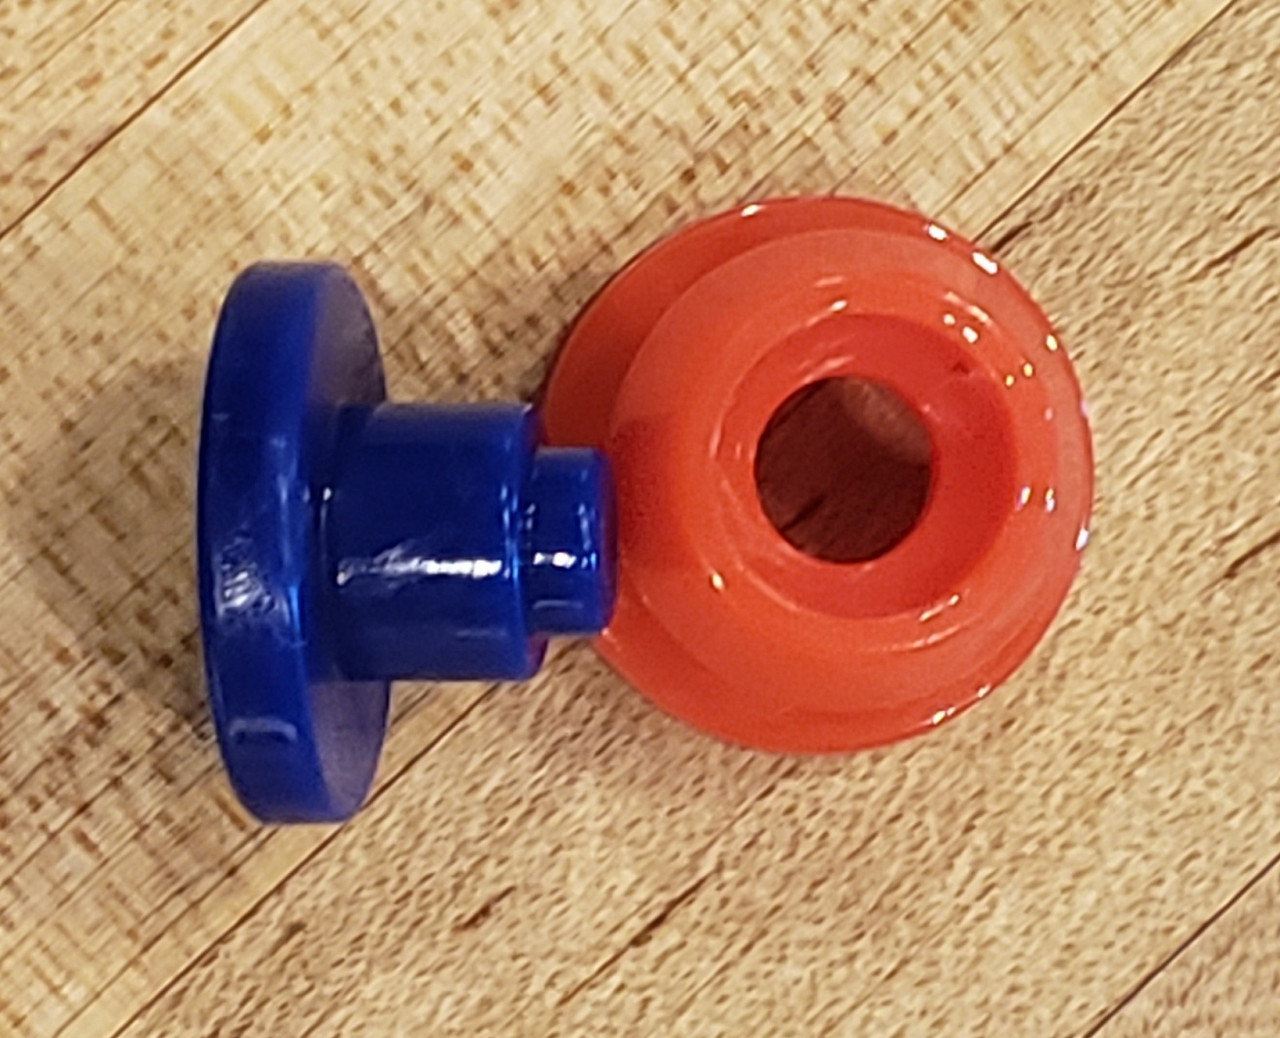 Lincoln Mark VII FA1KIT™ Transmission Shift Lever / Linkage Replacement Bushing Kit includes one bushing and one installation tool.